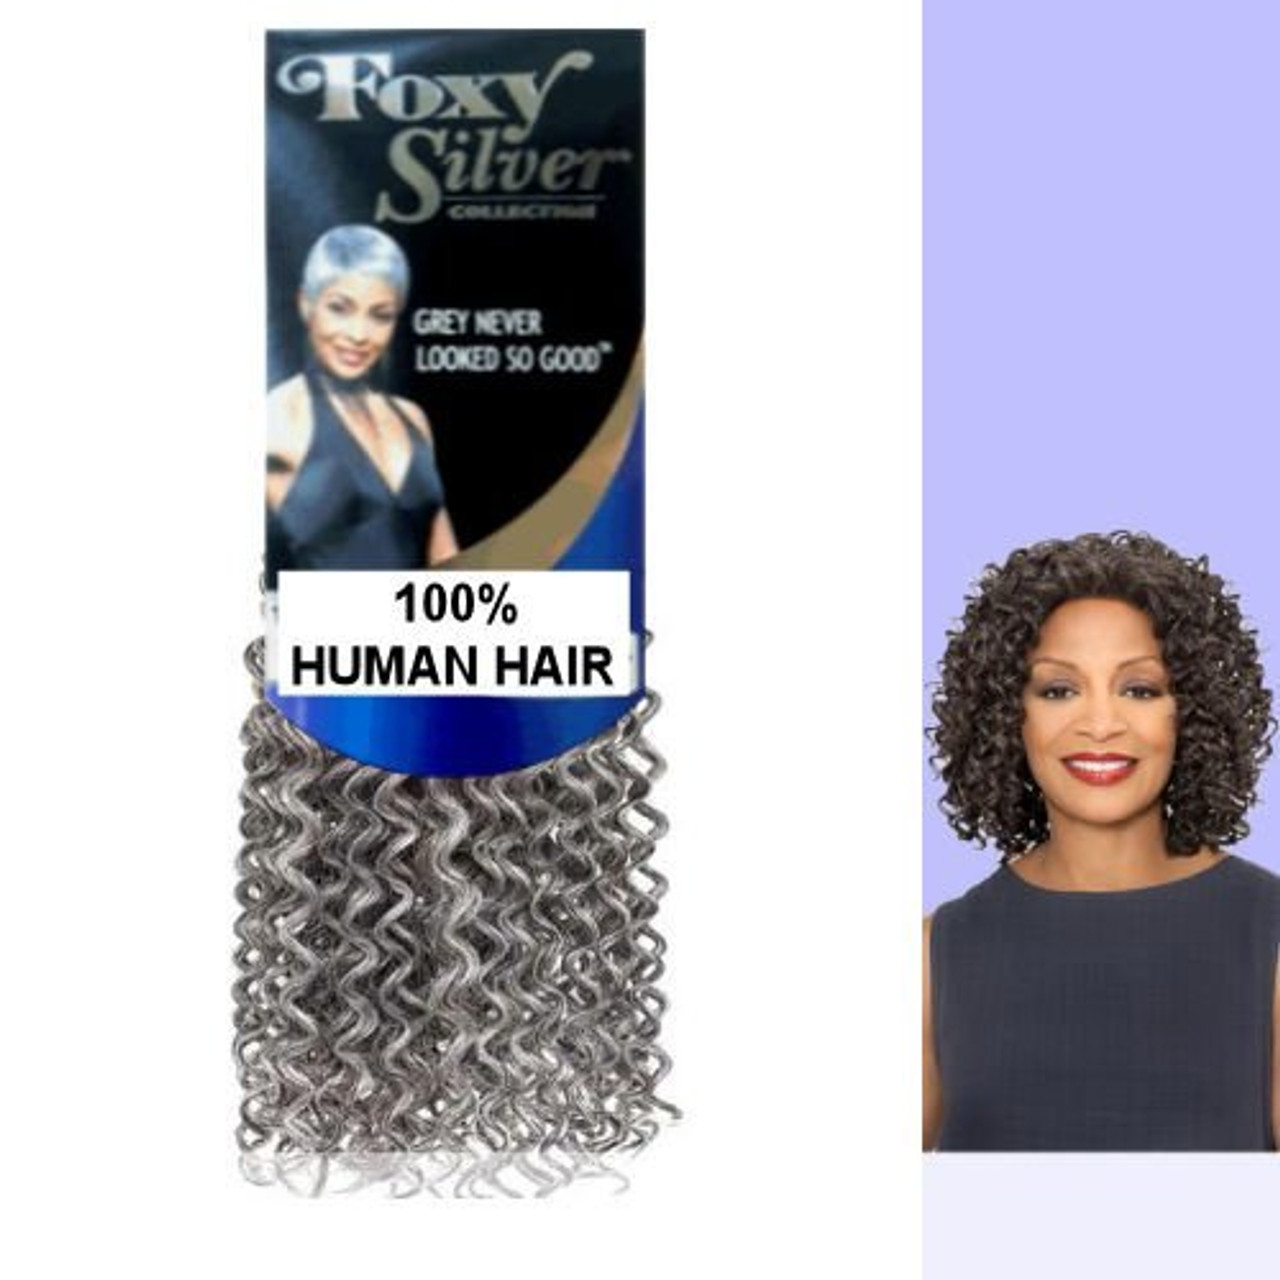 Foxy Silver Hh Jerry 100 Human Hair Weave 10 Luxe Beauty Supply